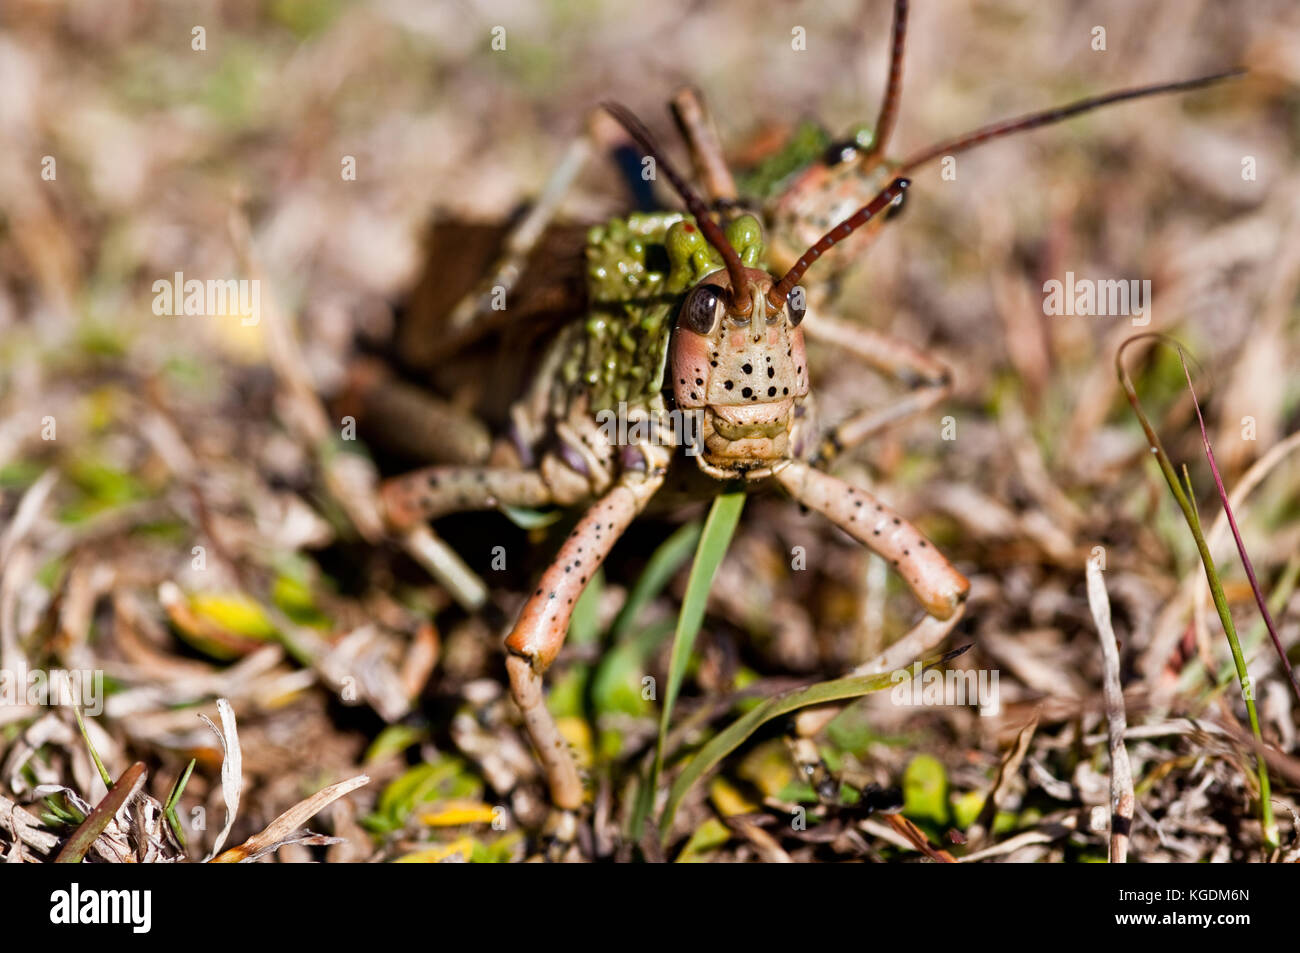 Pyrgomorphid Grasshopper also known as the Gaudy Grasshopper. This image was taken in South Africa. - Stock Image